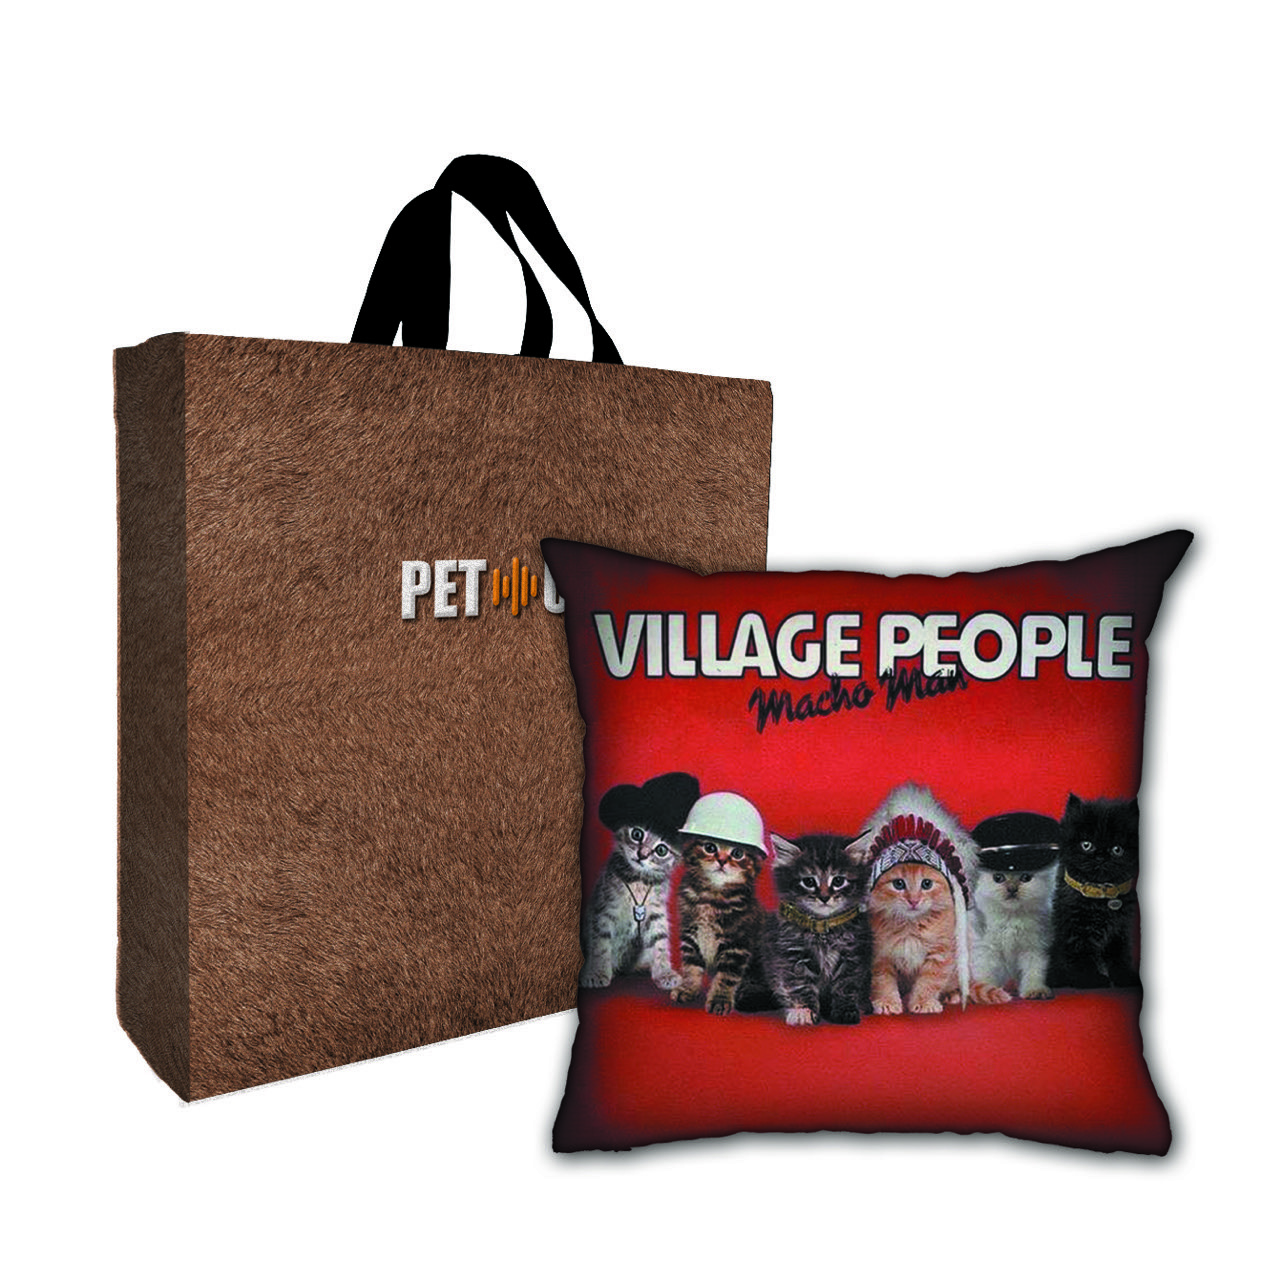 Kit Almofada & Sacola Bege Pet Use - Village Cats - Gatos